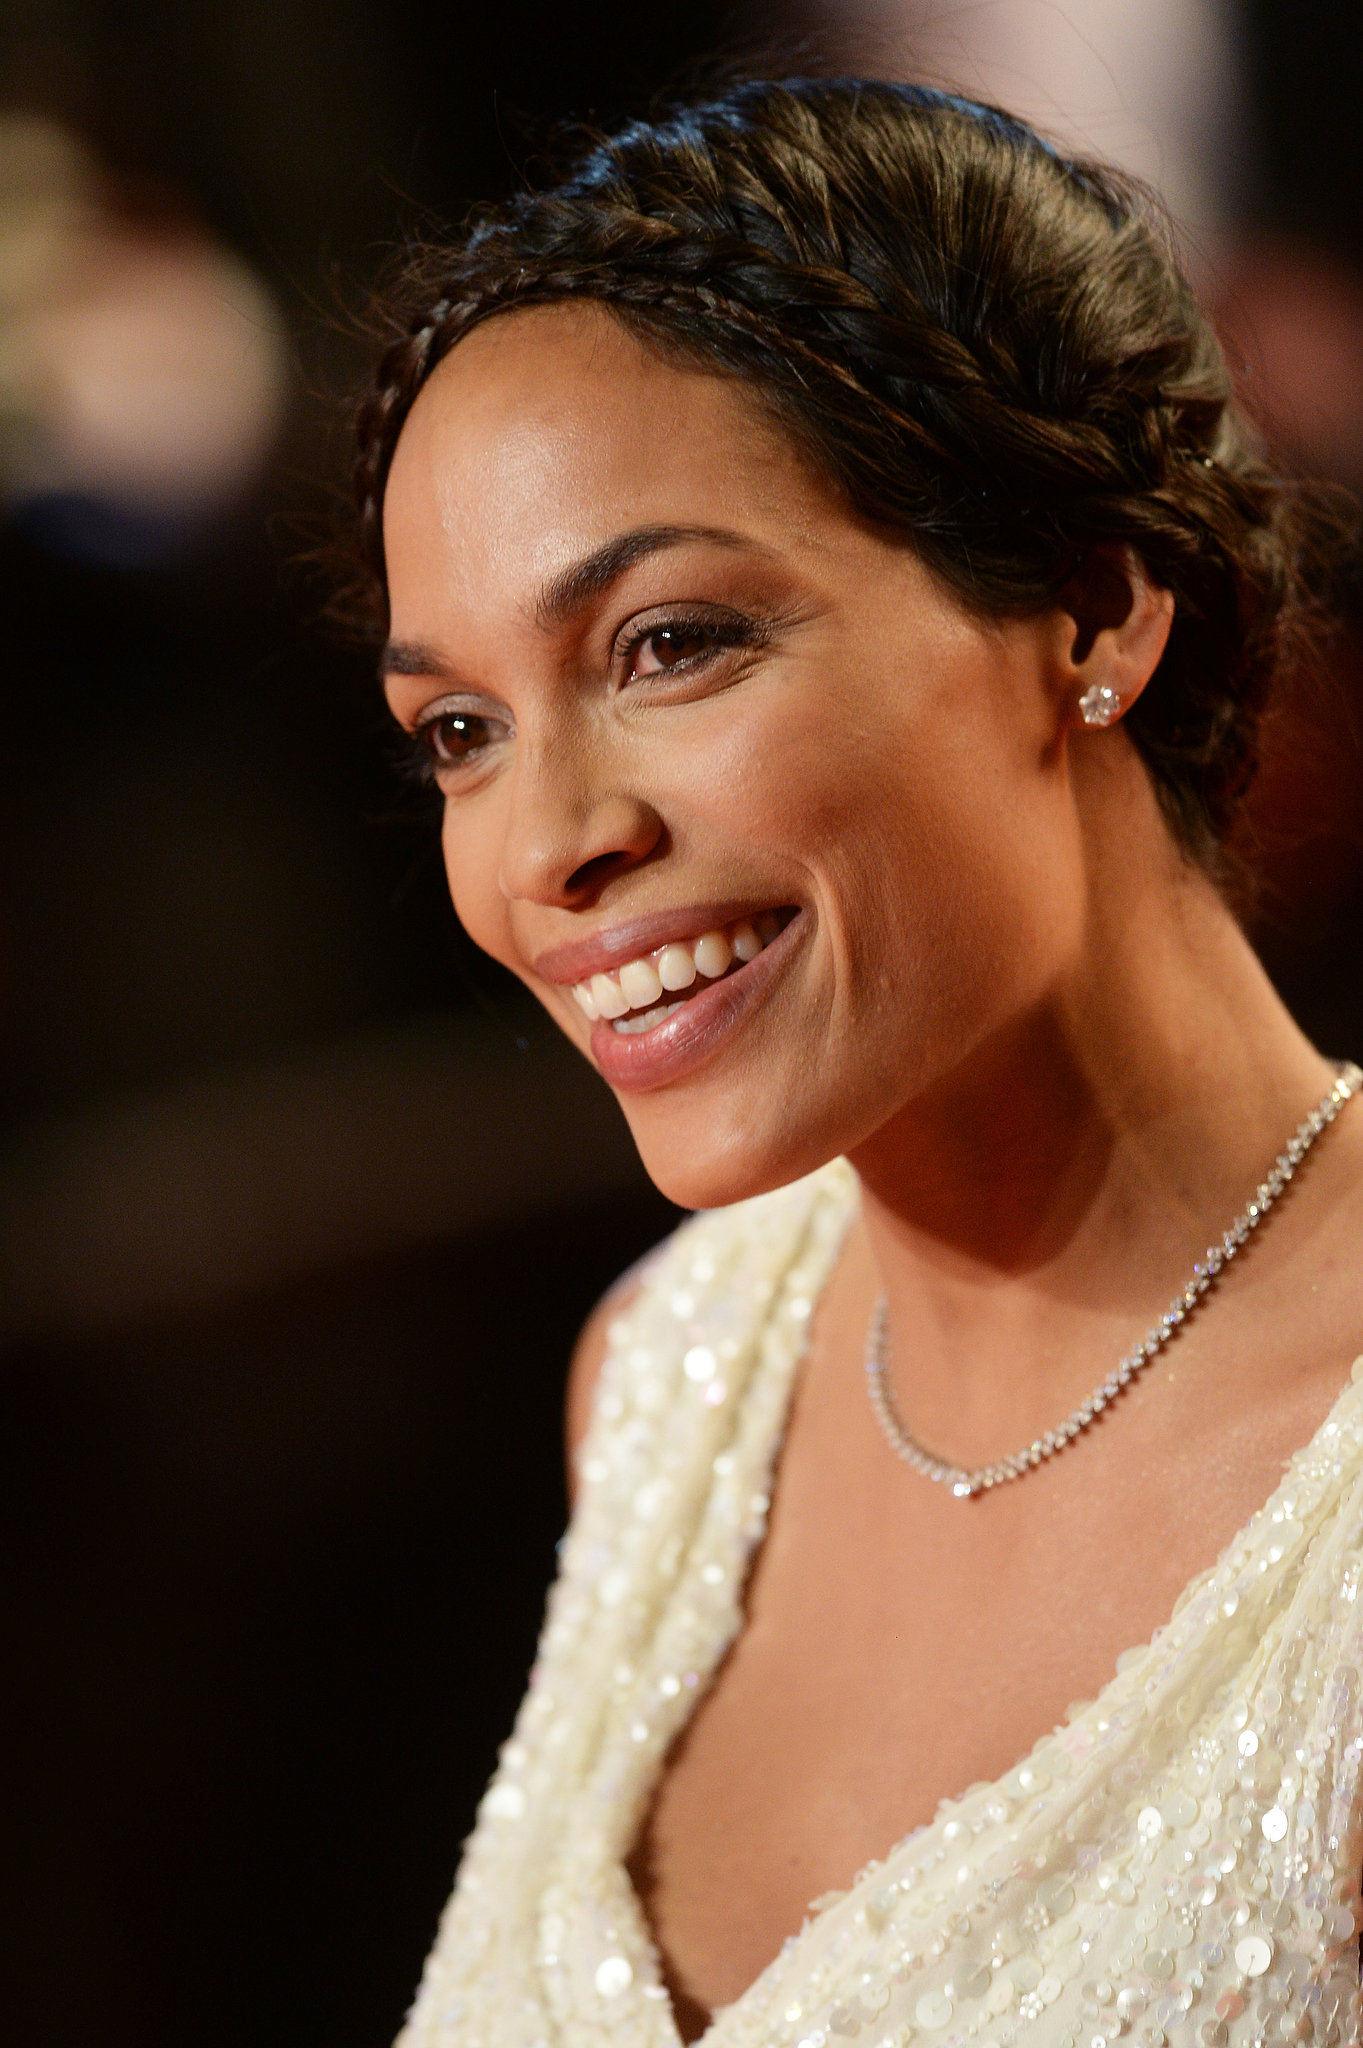 For her turn on the red carpet at the premiere of As I Lay Dying at Cannes, Rosario Dawson stunned in a delicate crown of braids. This style would be perfect tucked under a delicate veil.